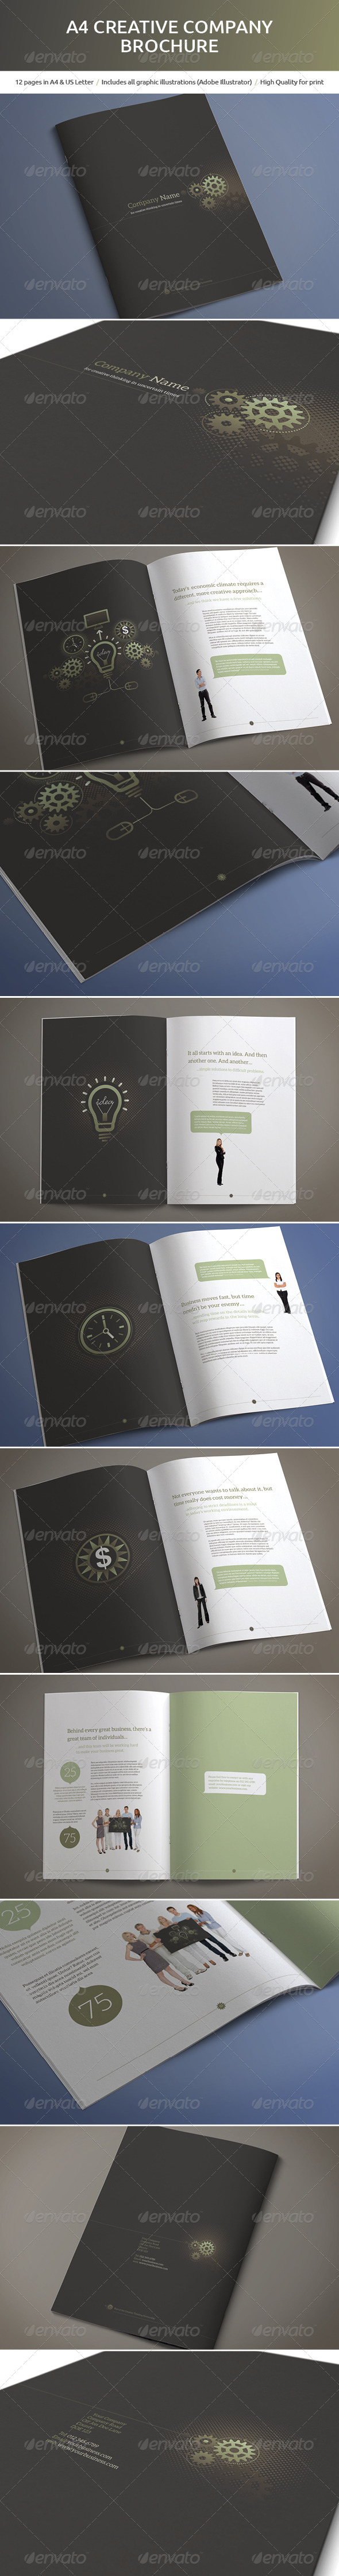 GraphicRiver A4 Creative Company Brochure 5011643